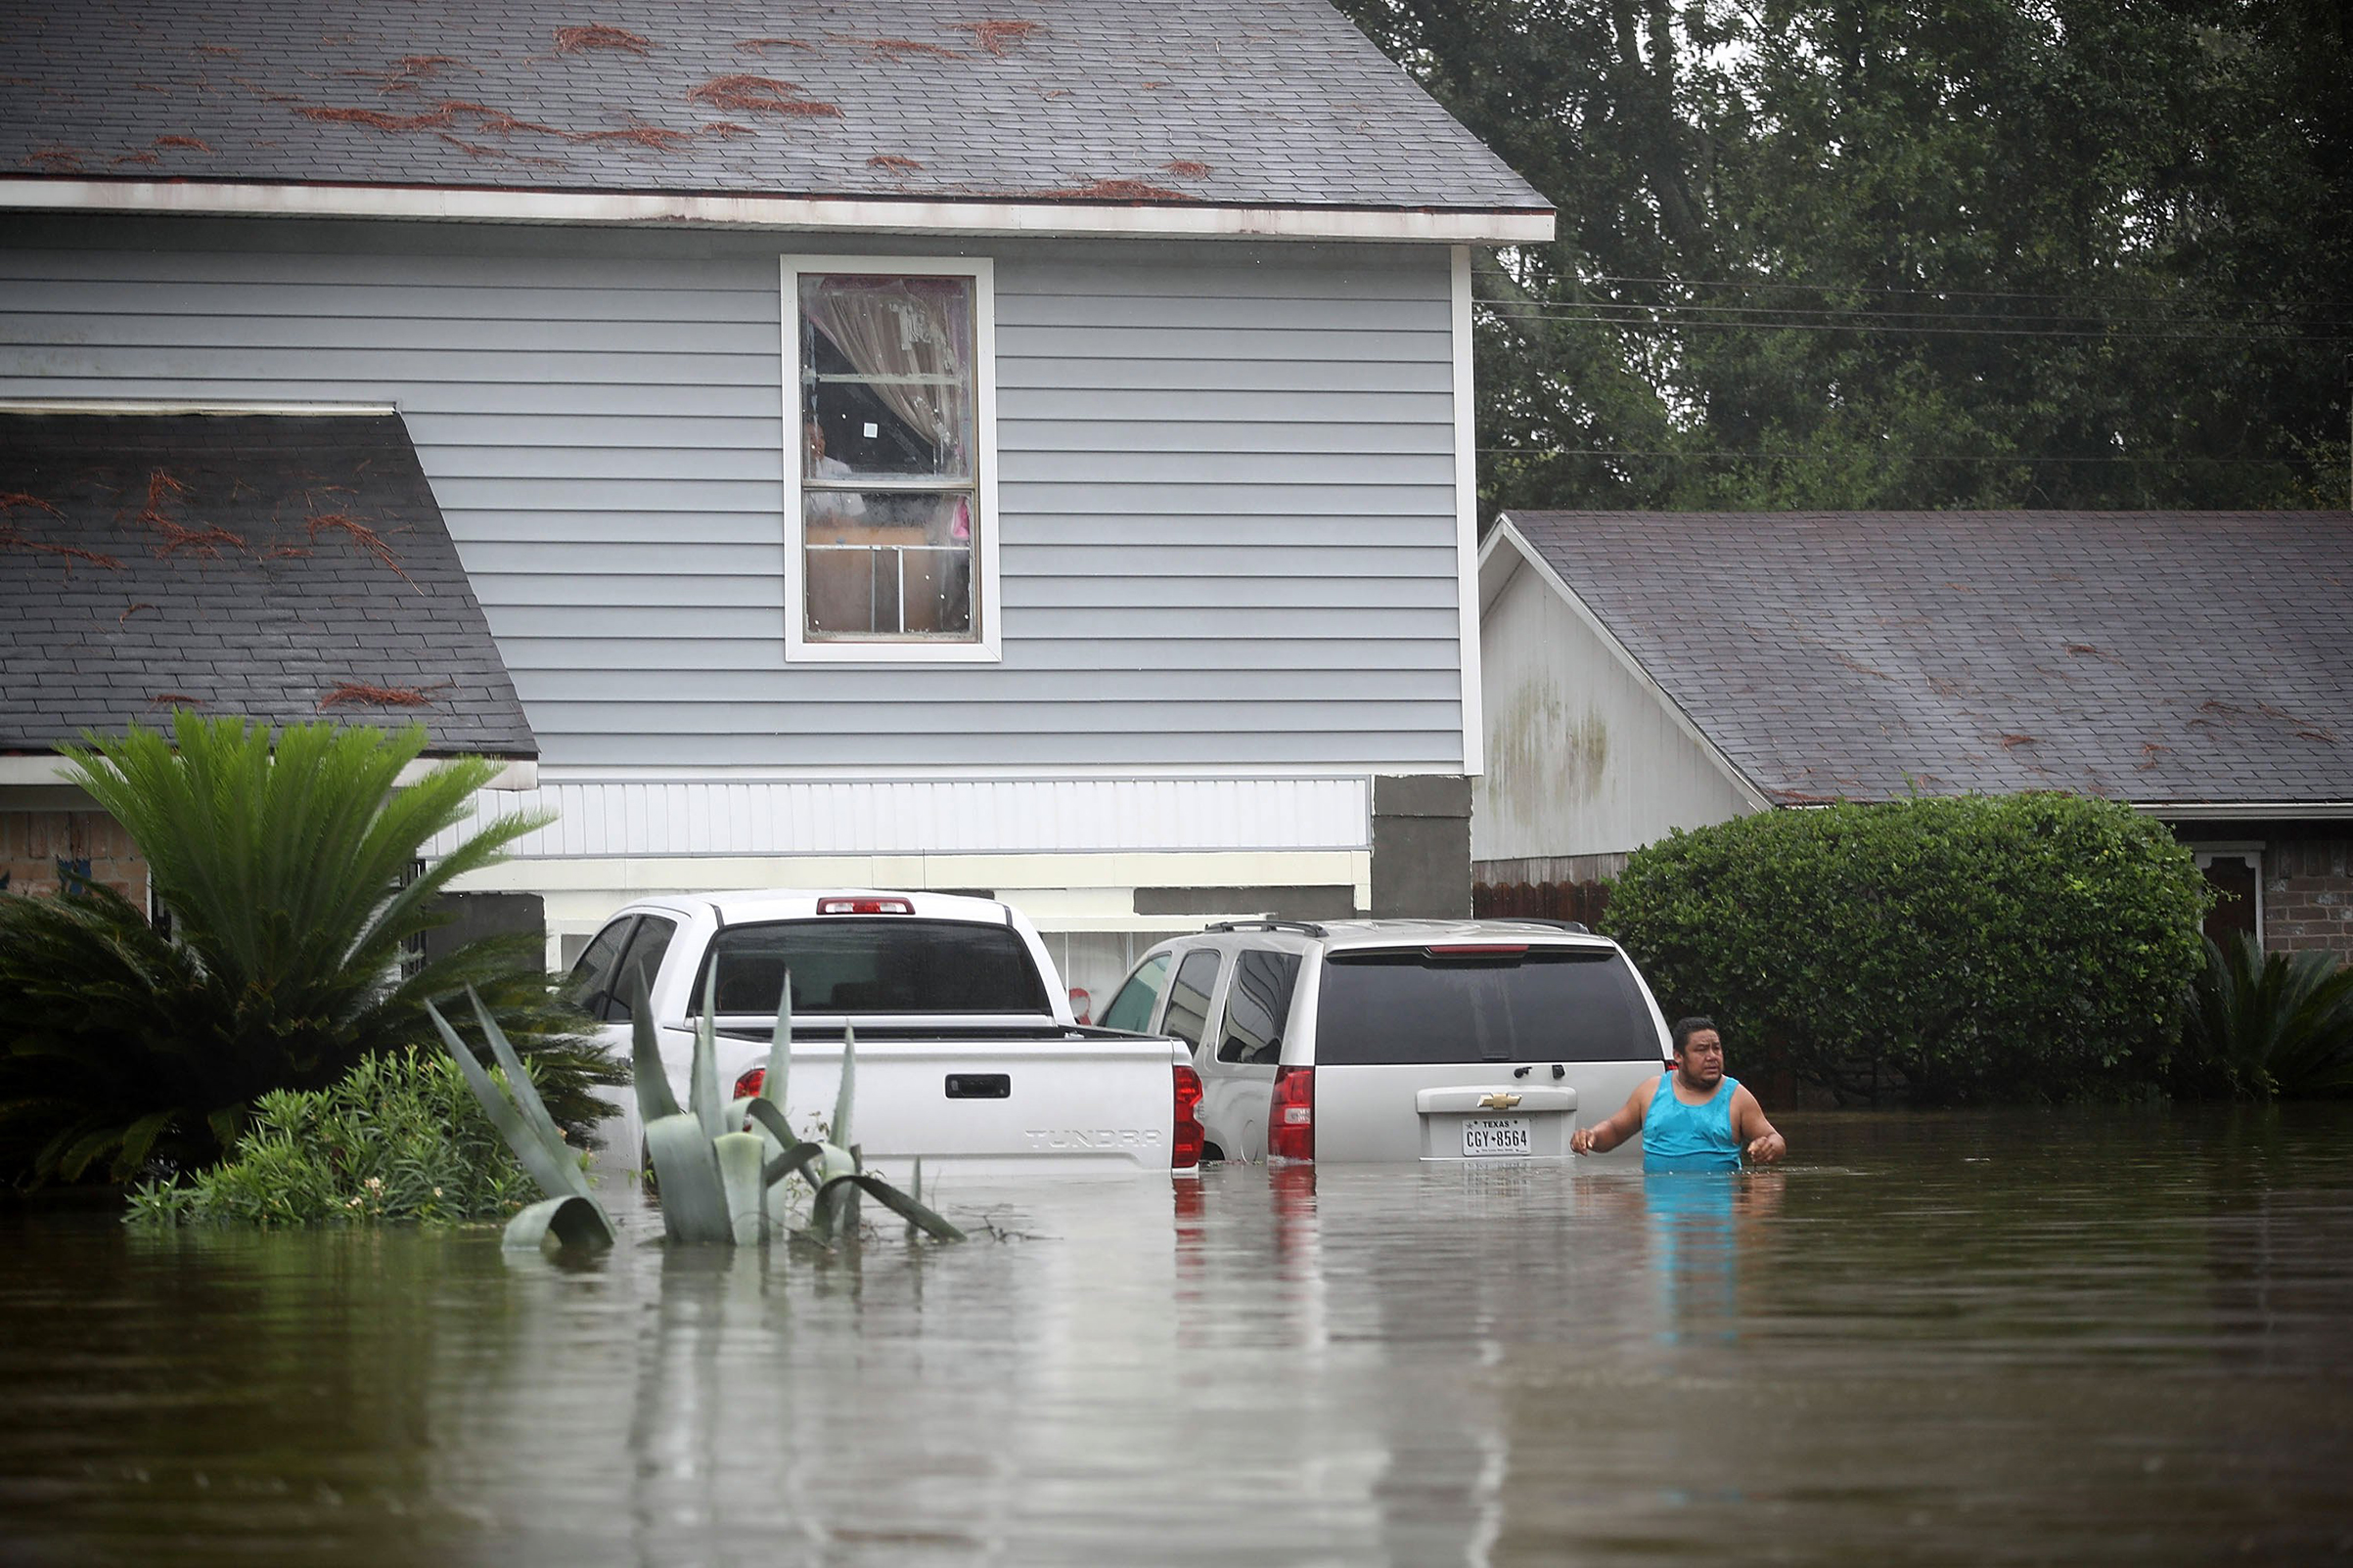 People wait to be rescued from their  flooded homes after the area was inundated with flooding from Hurricane Harvey on August 28, 2017 in Houston, Texas.